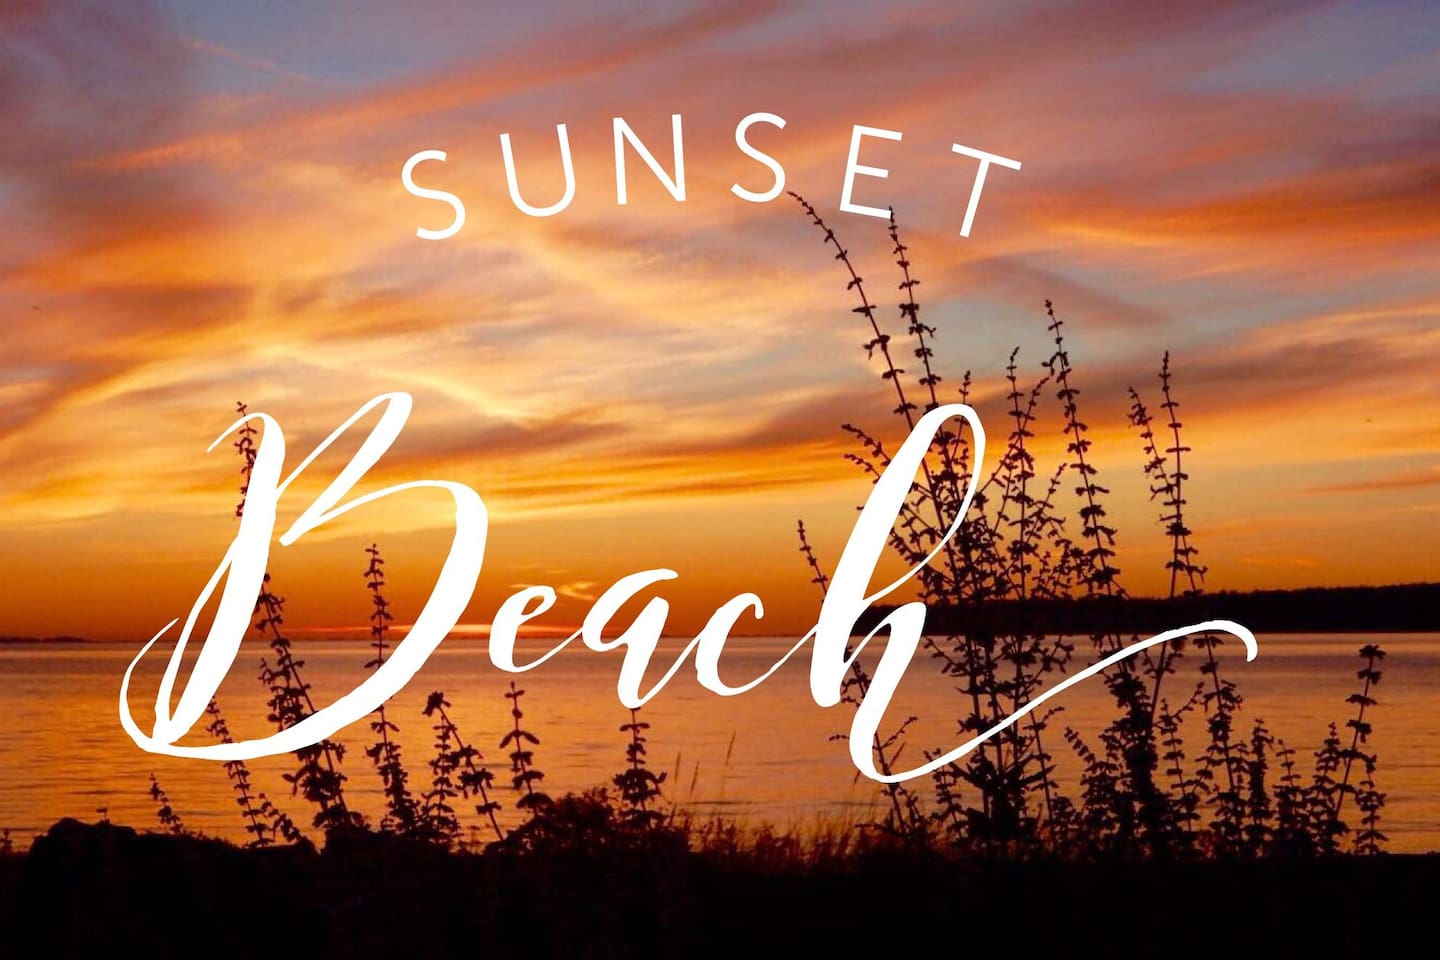 A sunset every evening is what inspired our name